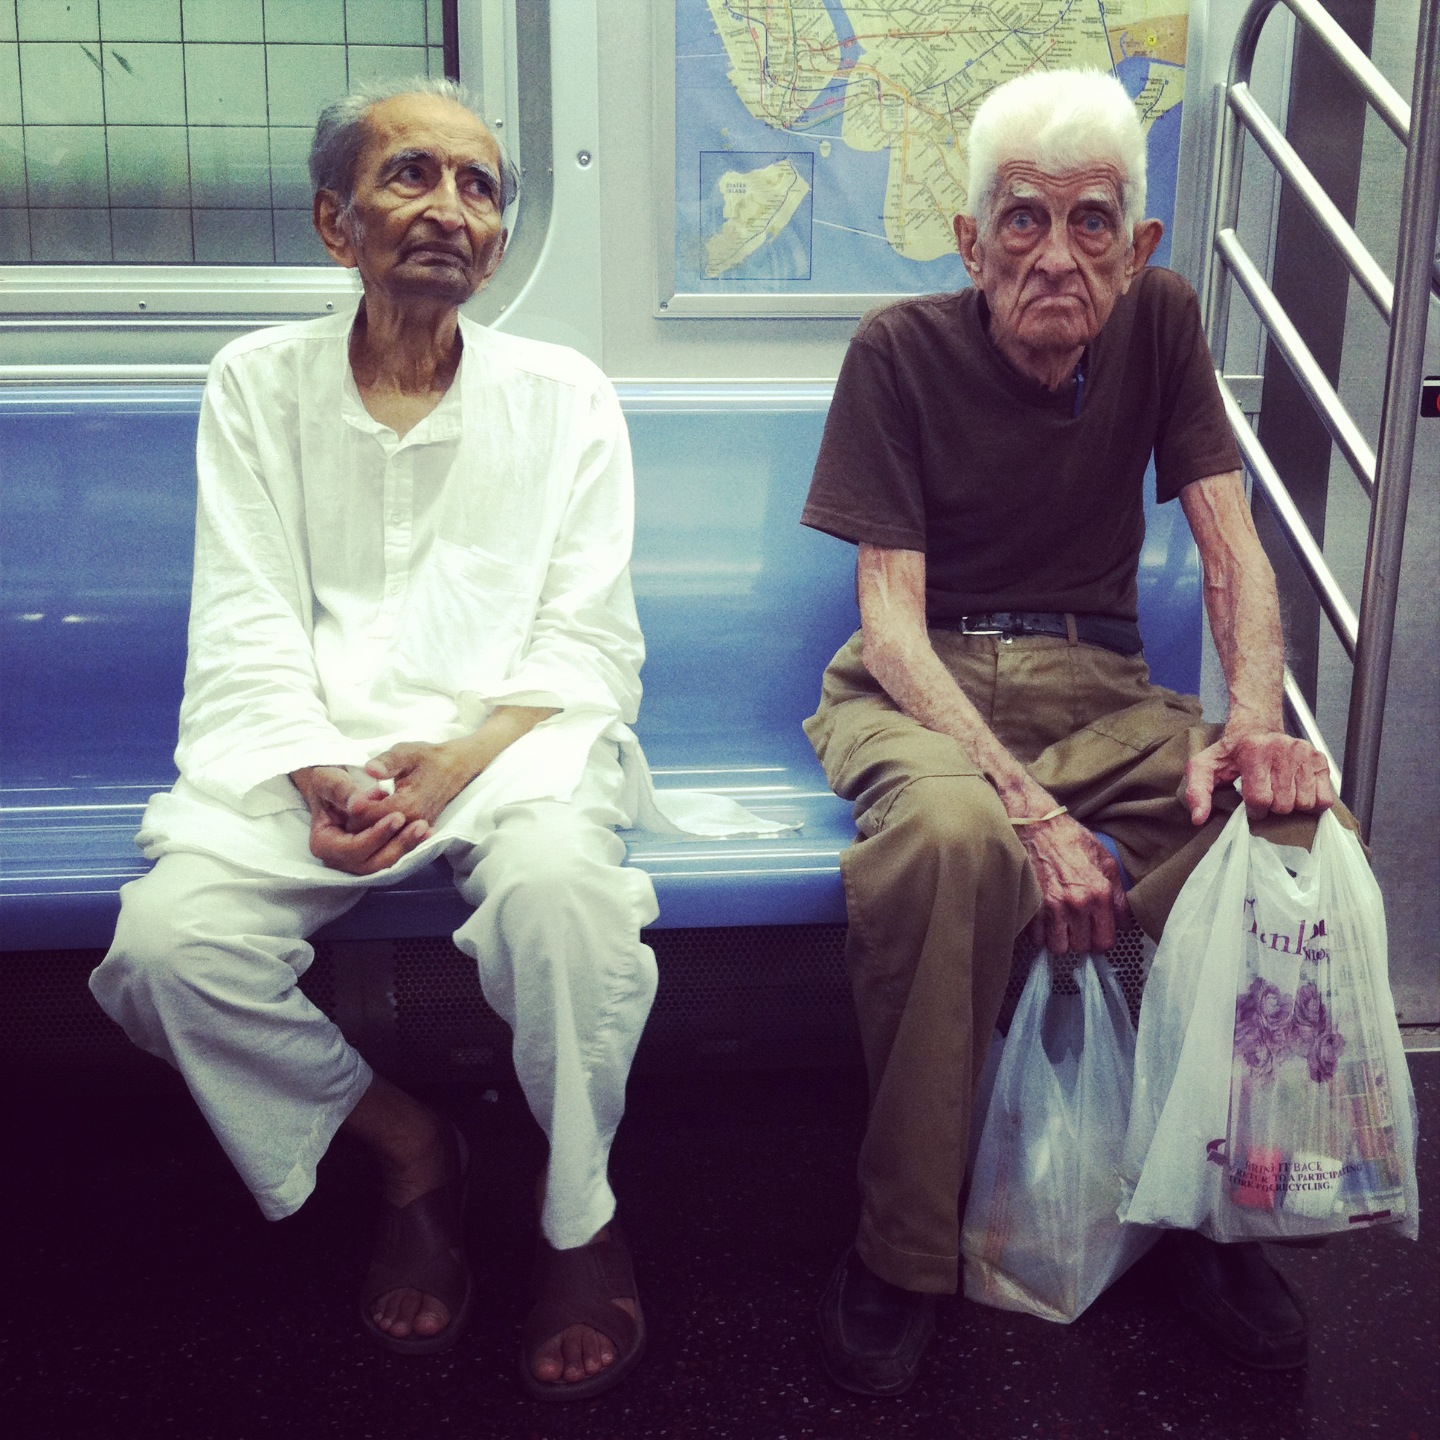 Old Strangers on the Subway 1